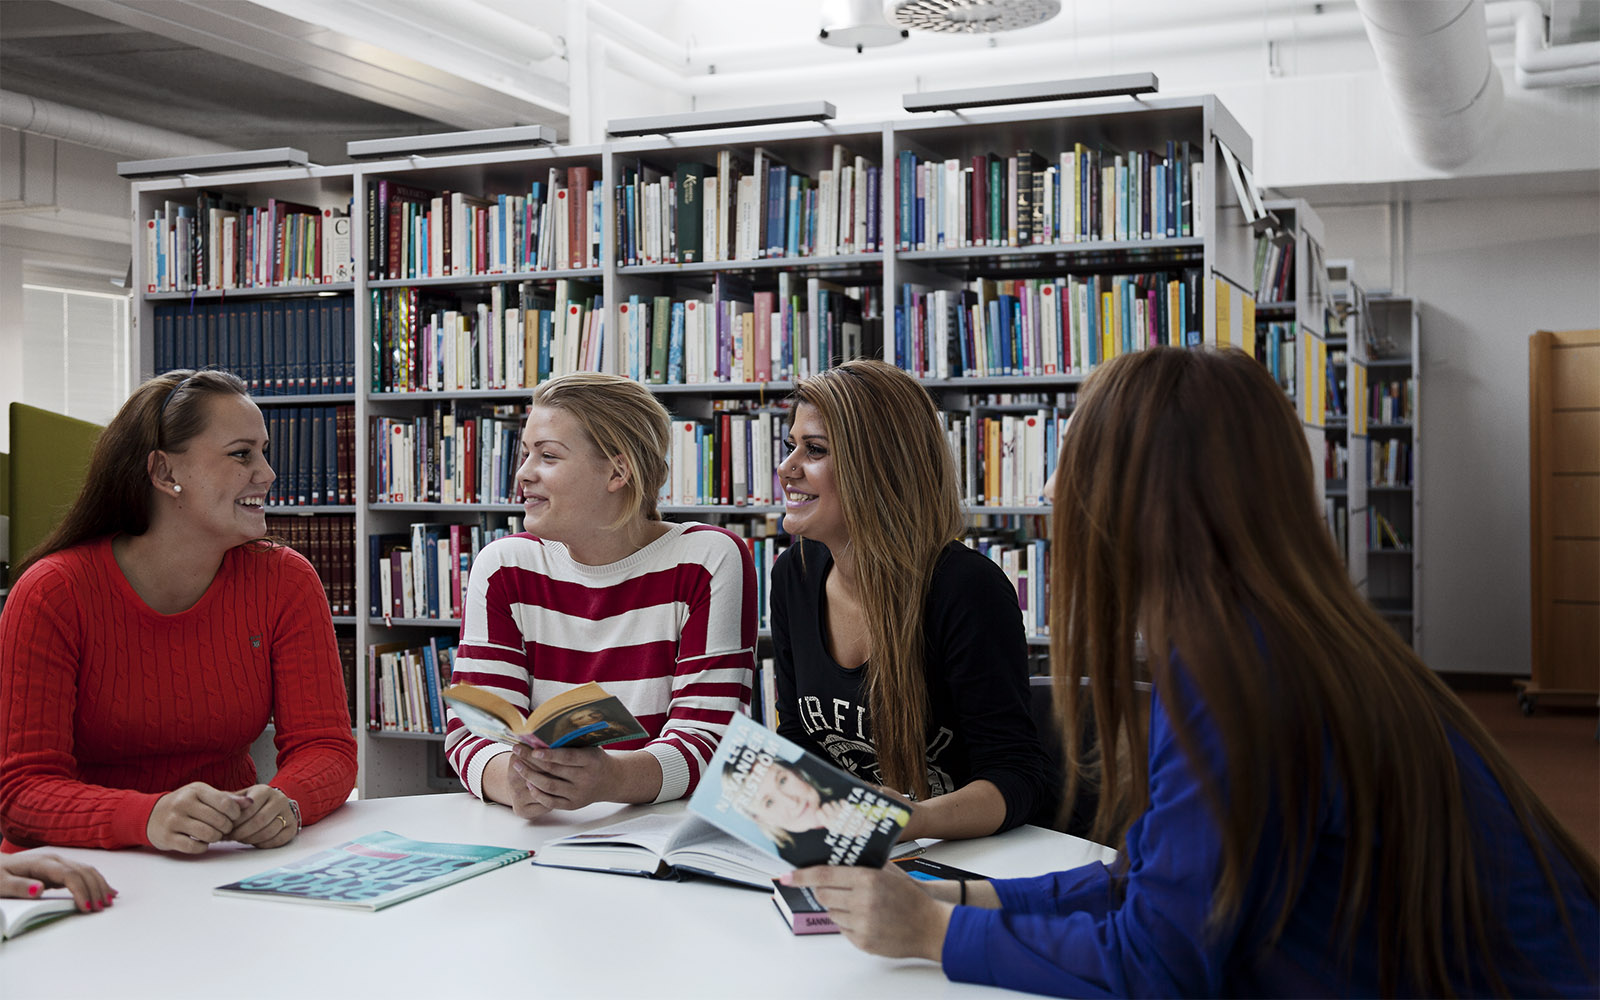 Students of the Sågbäcksgymnasiet in the library illuminated by natural light